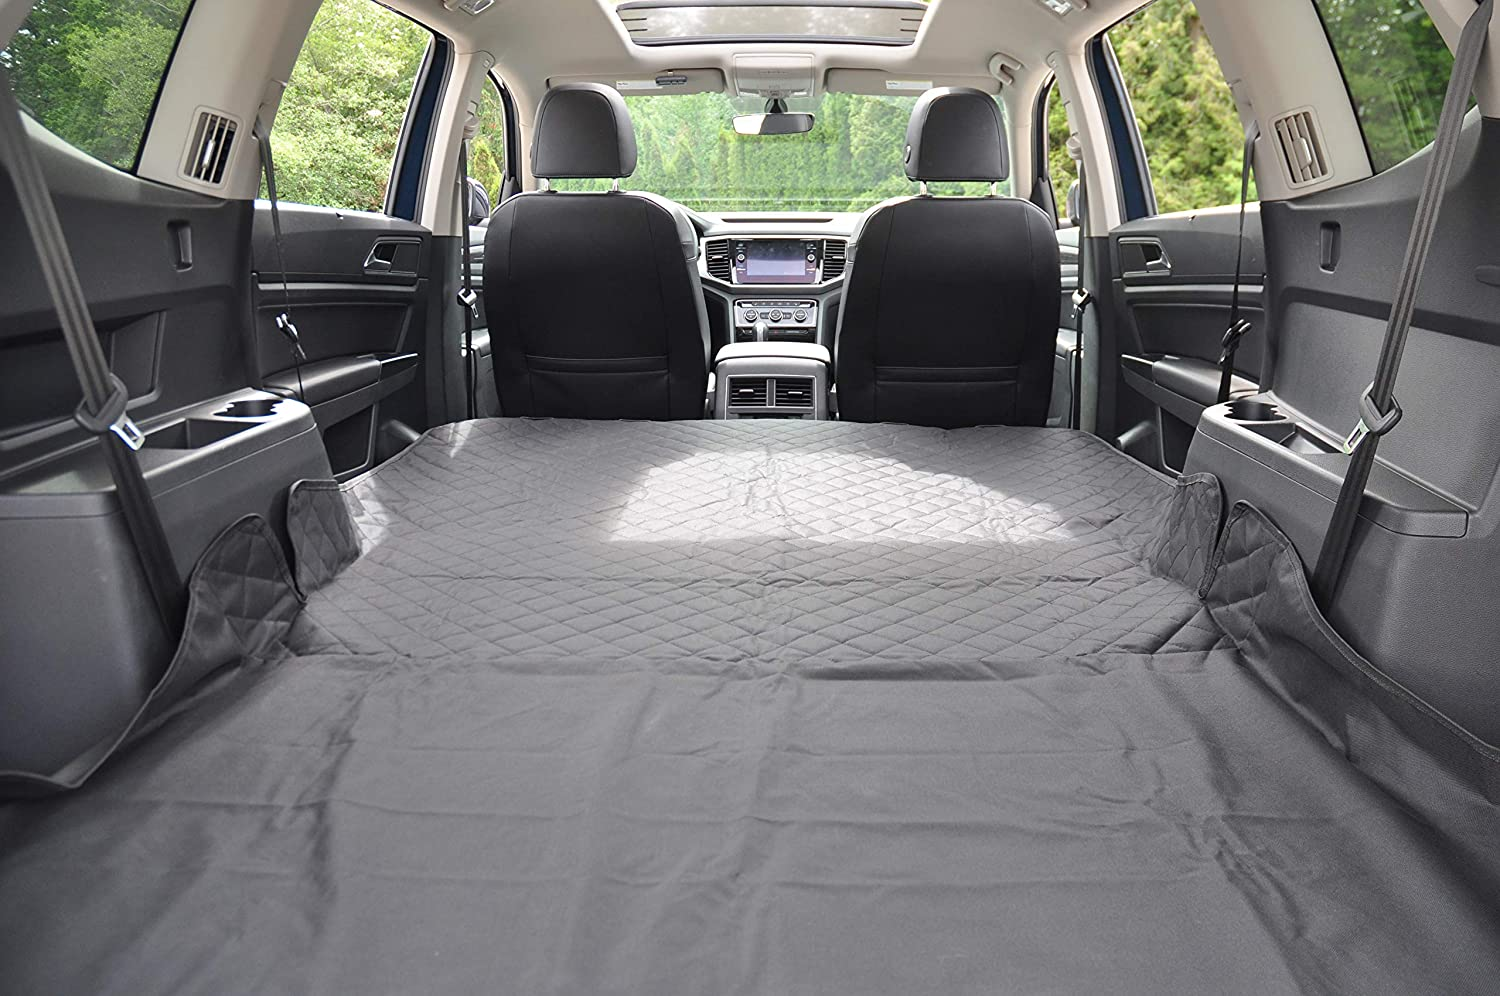 Nonslip Waterproof Oxford Fabric Dog Car Cargo Cover Liner Pet Cover,Pet Car SUV Trucks Cargo Liner Seat Cover Protection Mat